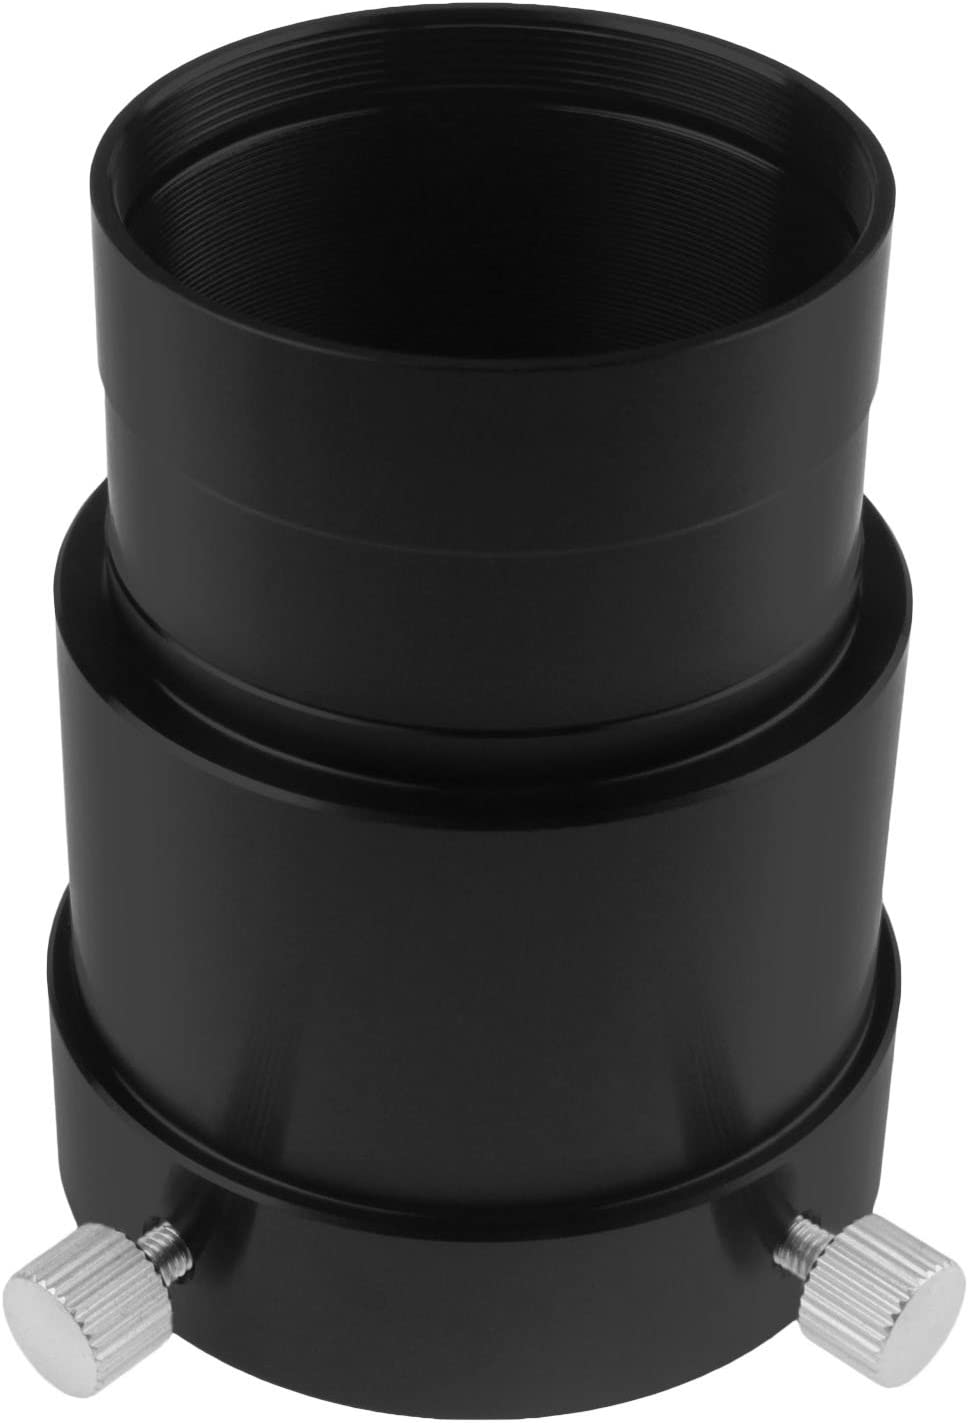 Alstar 2-Inch Telescope Eyepiece Extension Tube Adapter With Standand 2-Inch Filter Threads Optical Length 50mm